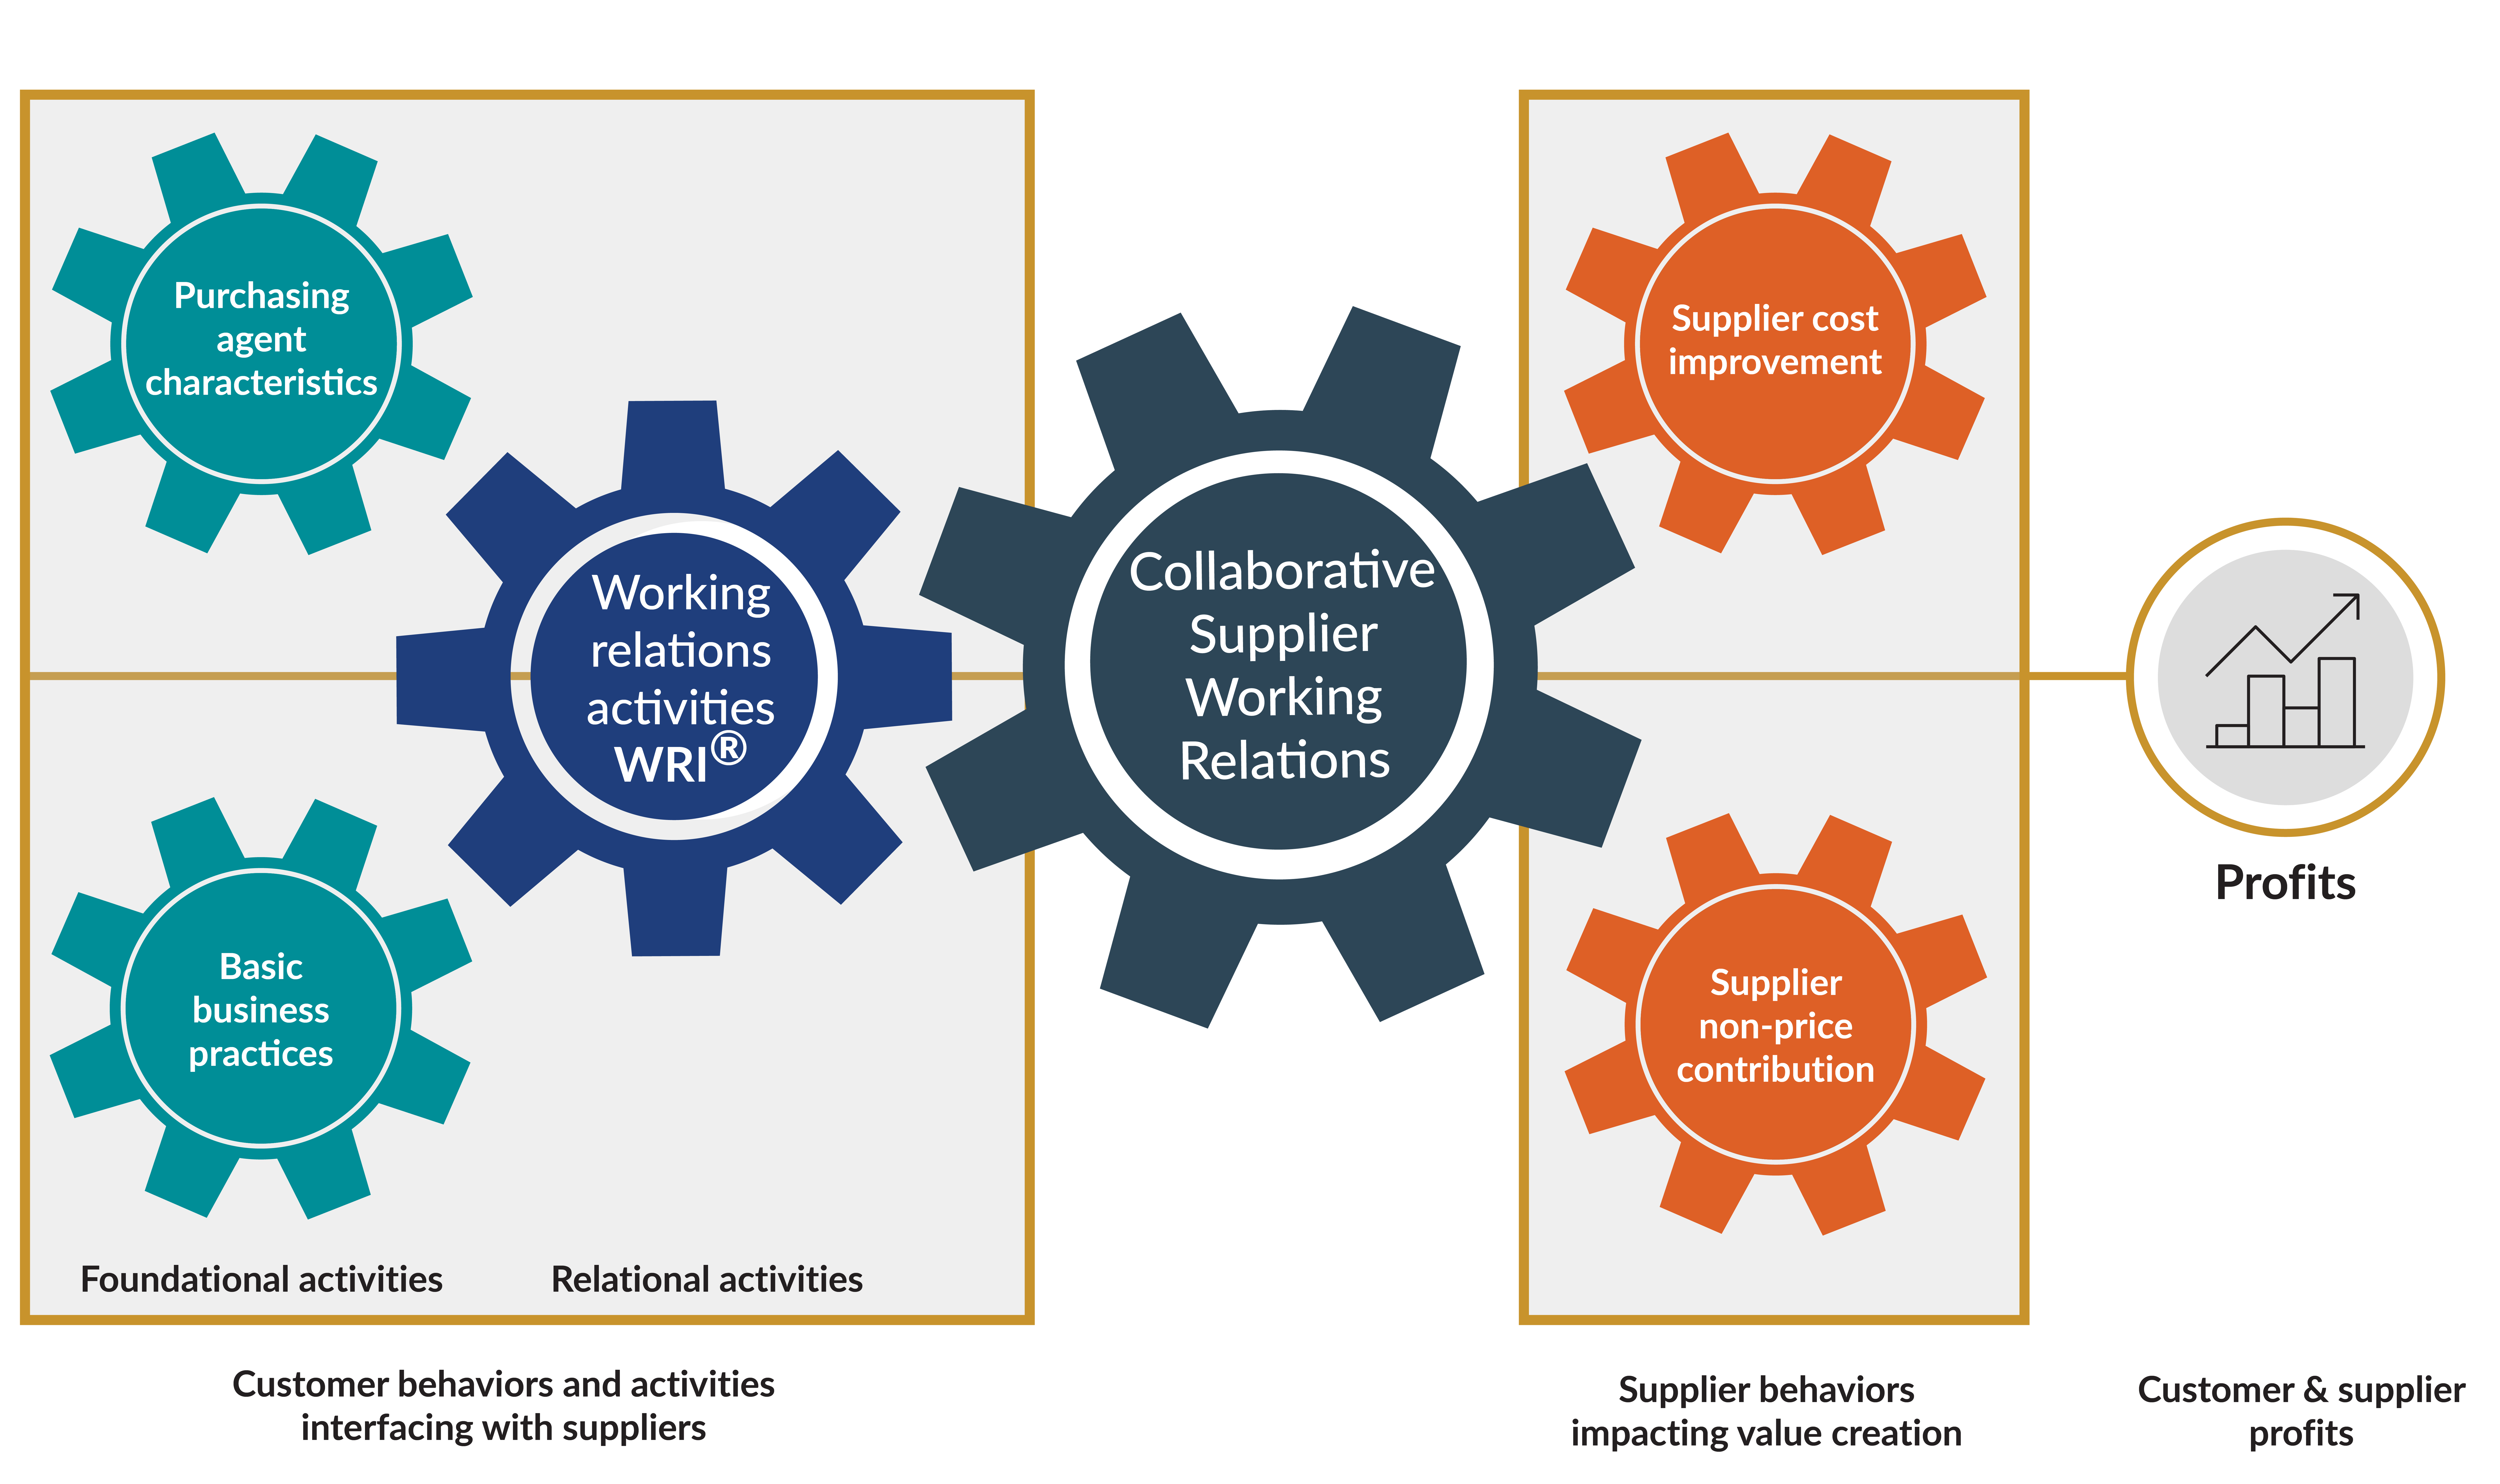 Supplier working relations